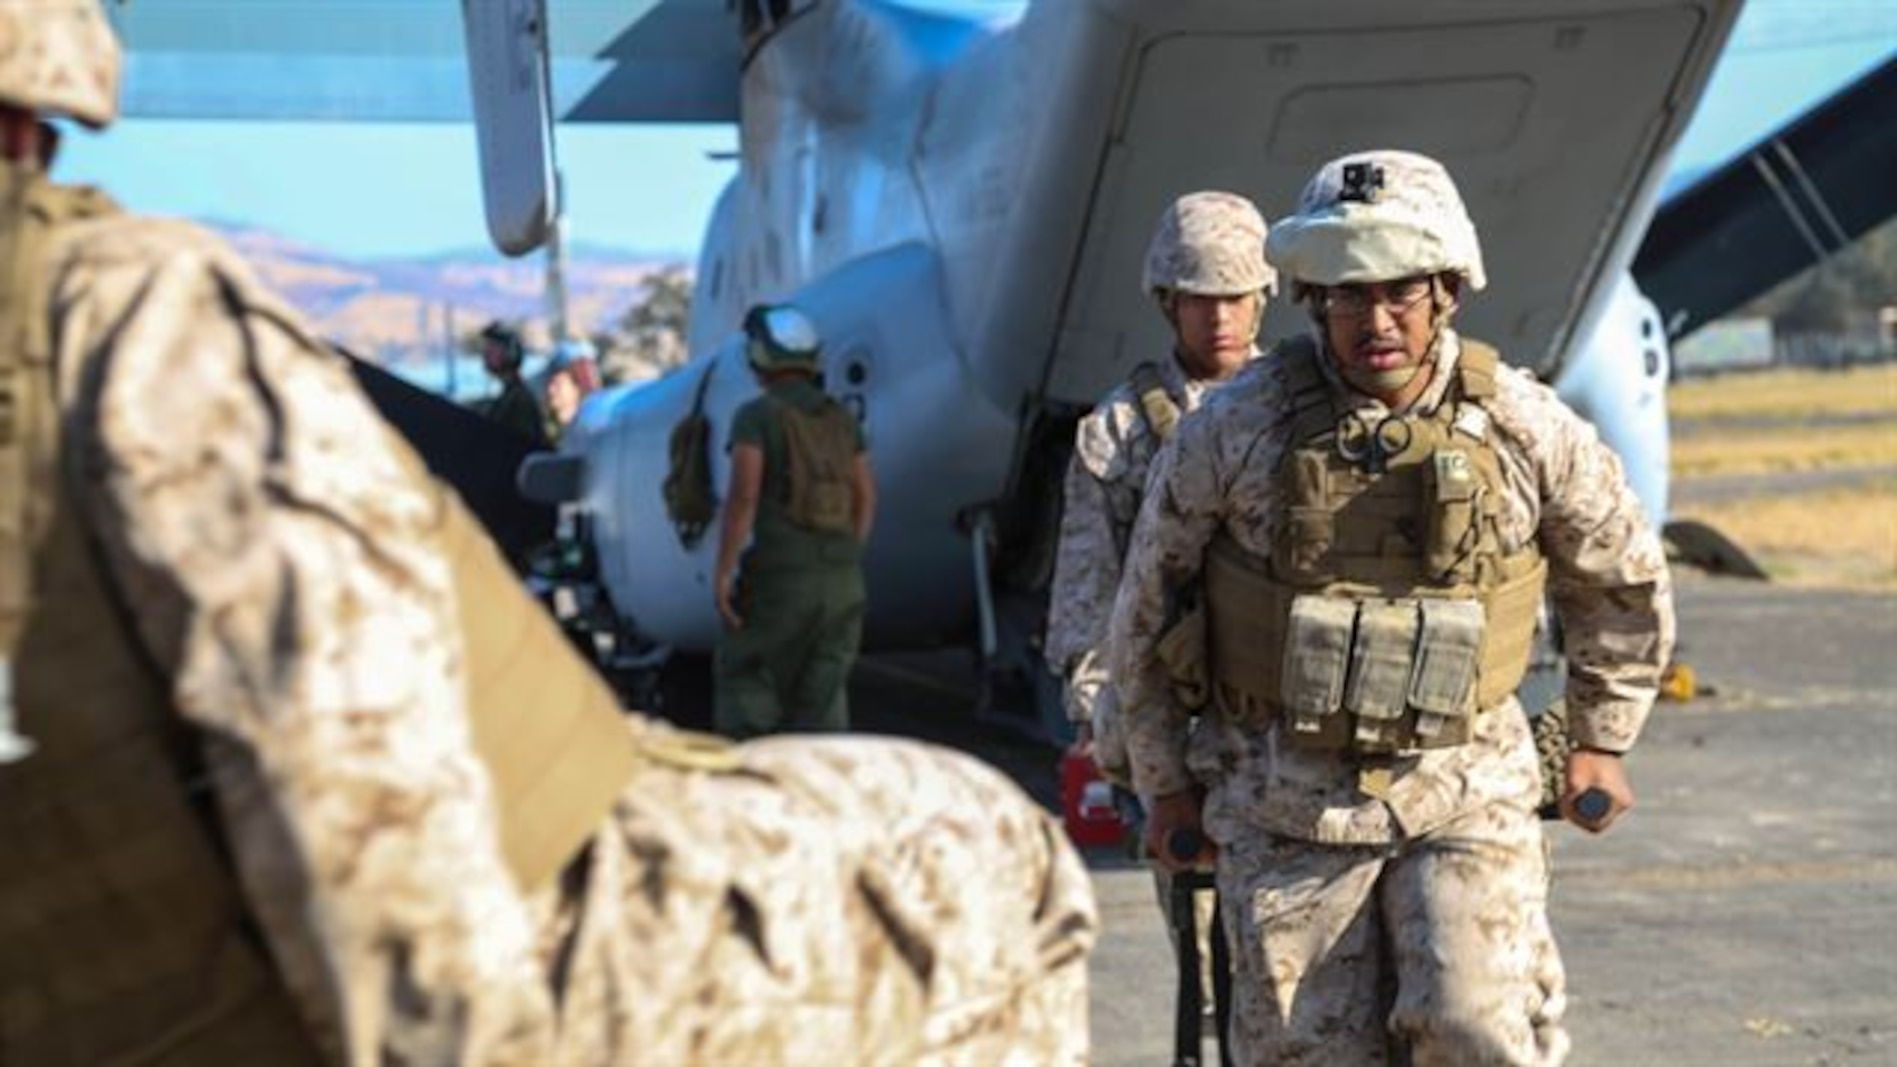 13th MEU Shock Trauma Platoon: From air to care  Petty Officer 2nd Class Phillip Lopez (front) and Seaman Jordan Saco, U.S. Navy Corpsmen with Shock Trauma Platoon, Combat Logistics Battalion 13, the logistics combat element for the 13th Marine Expeditionary Unit, carry a simulated casualty on a stretcher to the rear of a medical aid vehicle at Fort Hunter Liggett, California, during training to familiarize medical personnel with attending to casualties arriving on the flight line at Realistic Urban Training (RUT) Exercise, Sept. 2, 2015. RUT is the final ground-based training requirement prior to deployment as the 13th MEU moves toward operating embarked at sea.